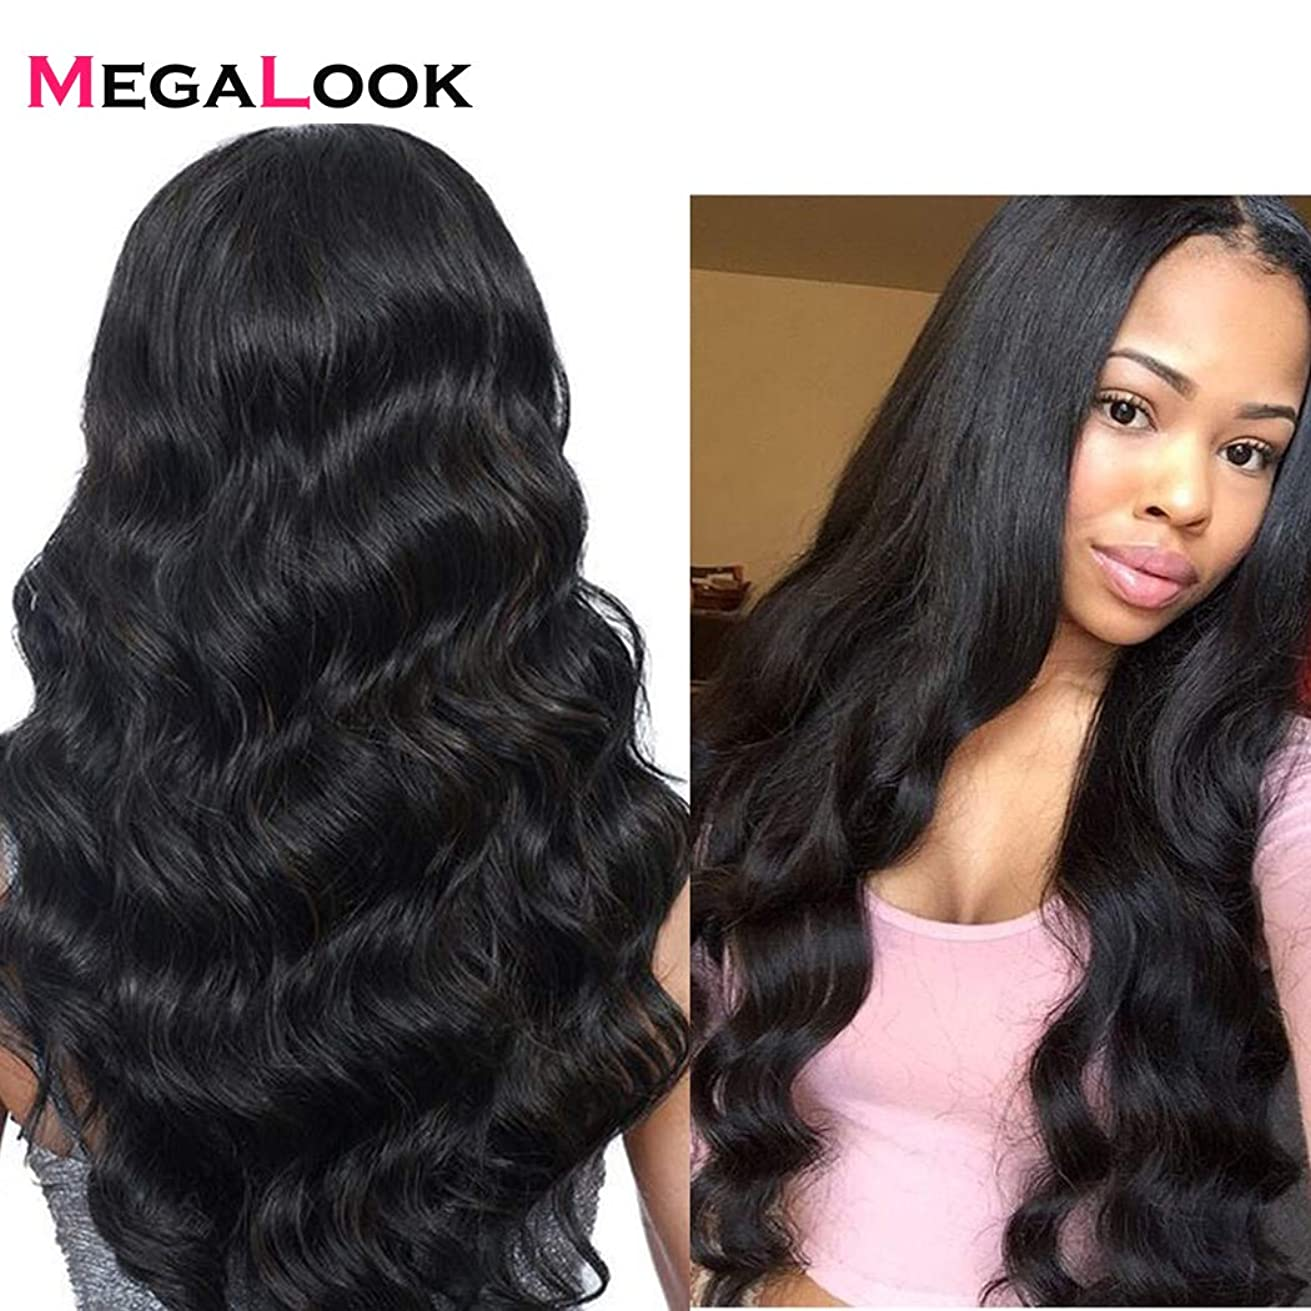 Megalook 360 Lace Frontal Wig Pre Plucked with Baby Hair 18inch Body Wave Brazilian Human Hair Wigs 360 Lace Wigs Human Hair Natural Hairline 150% Density